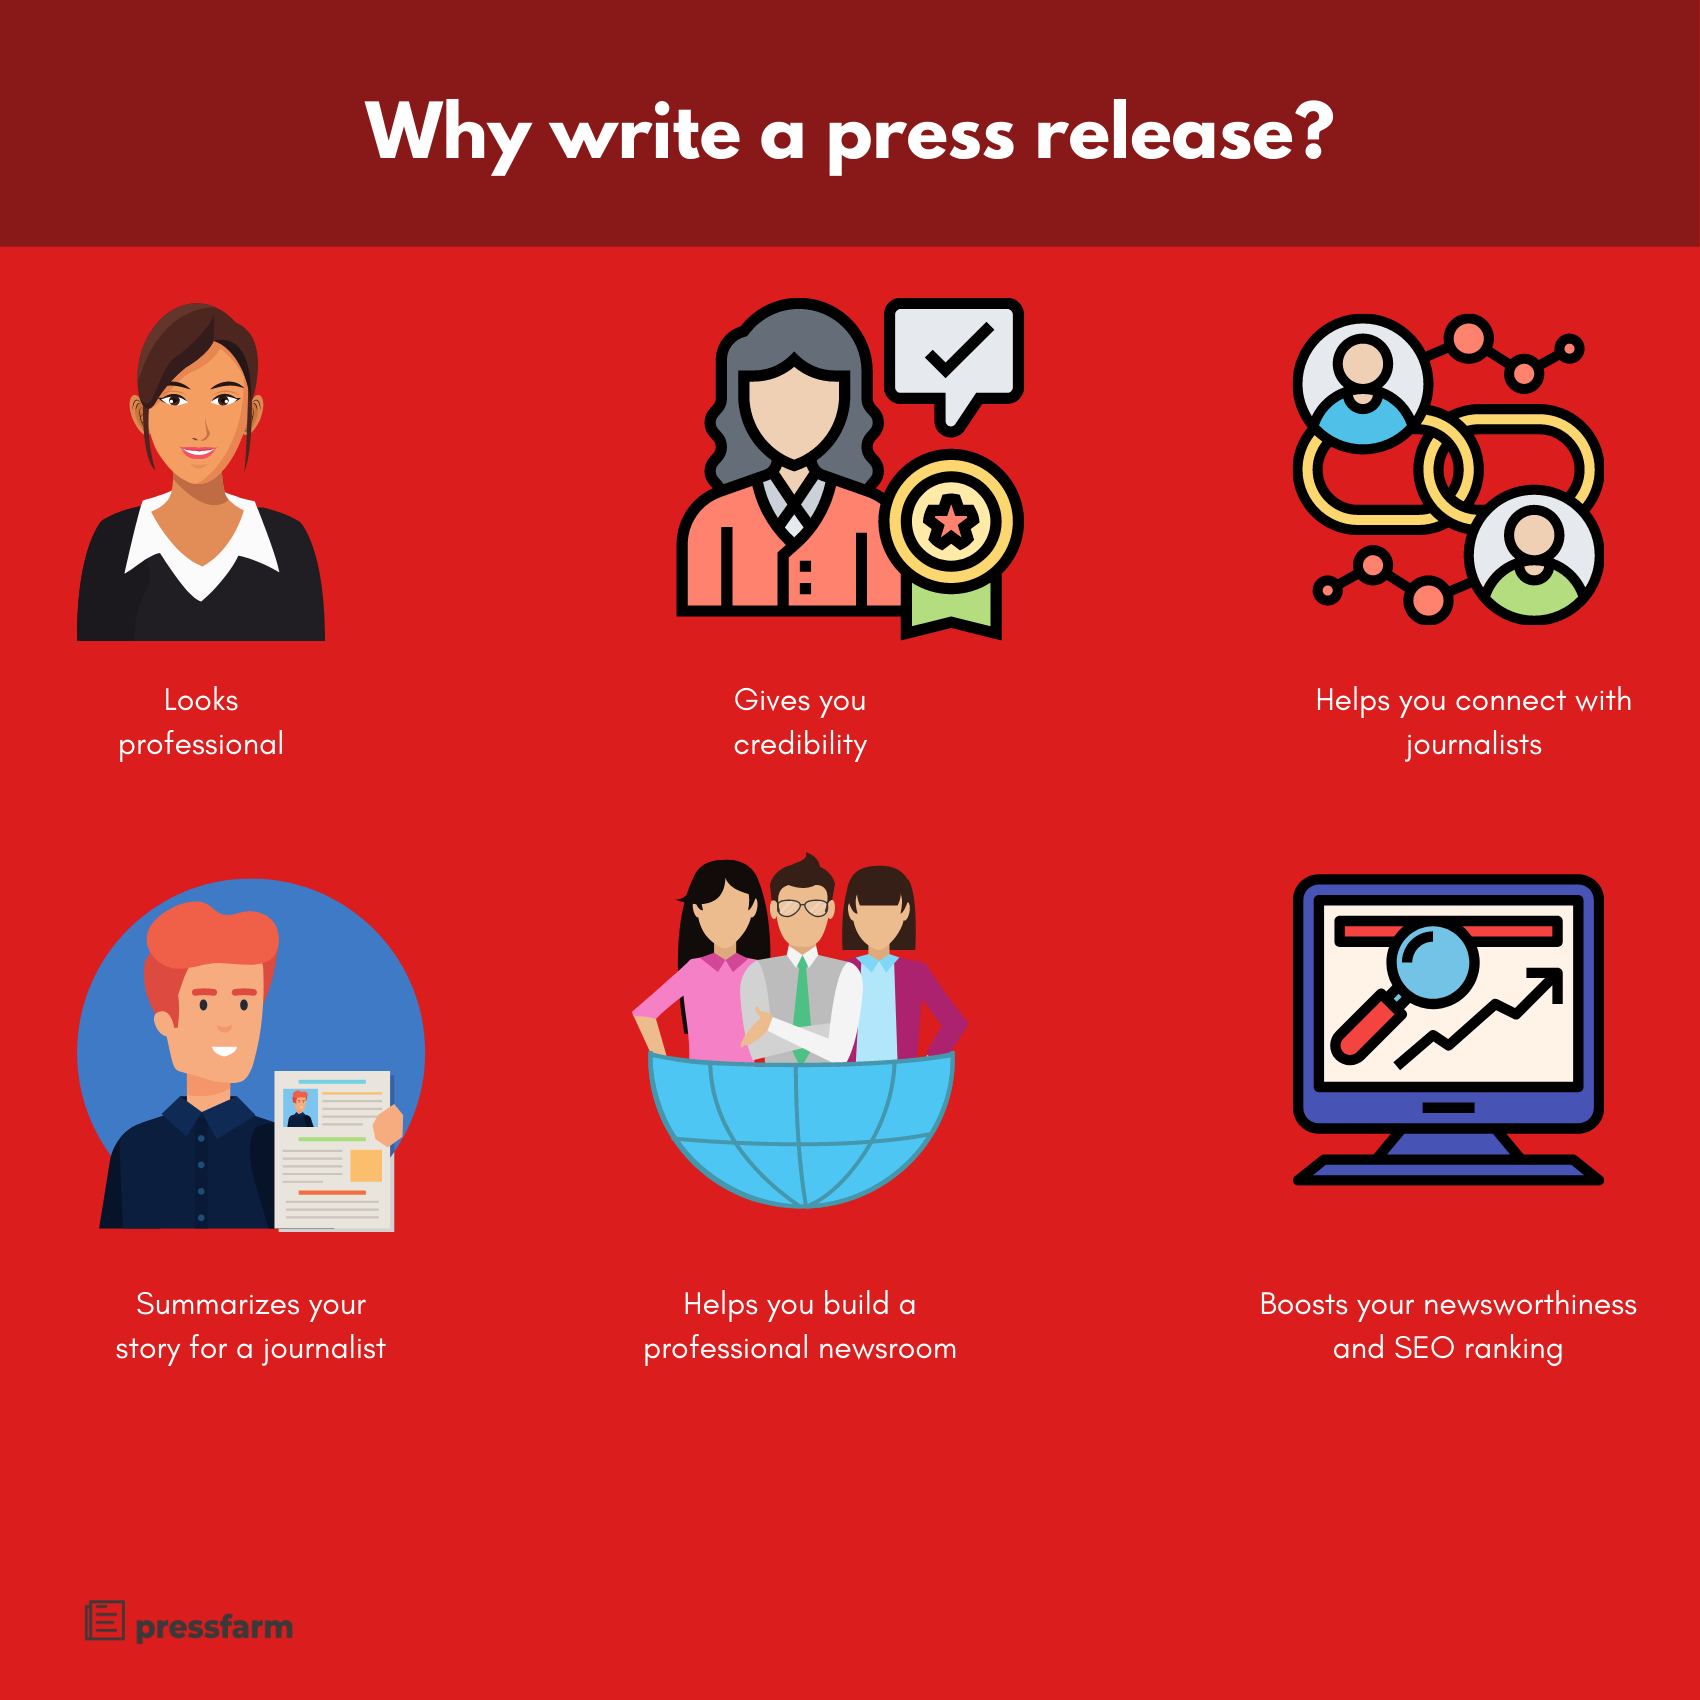 Why write a press release